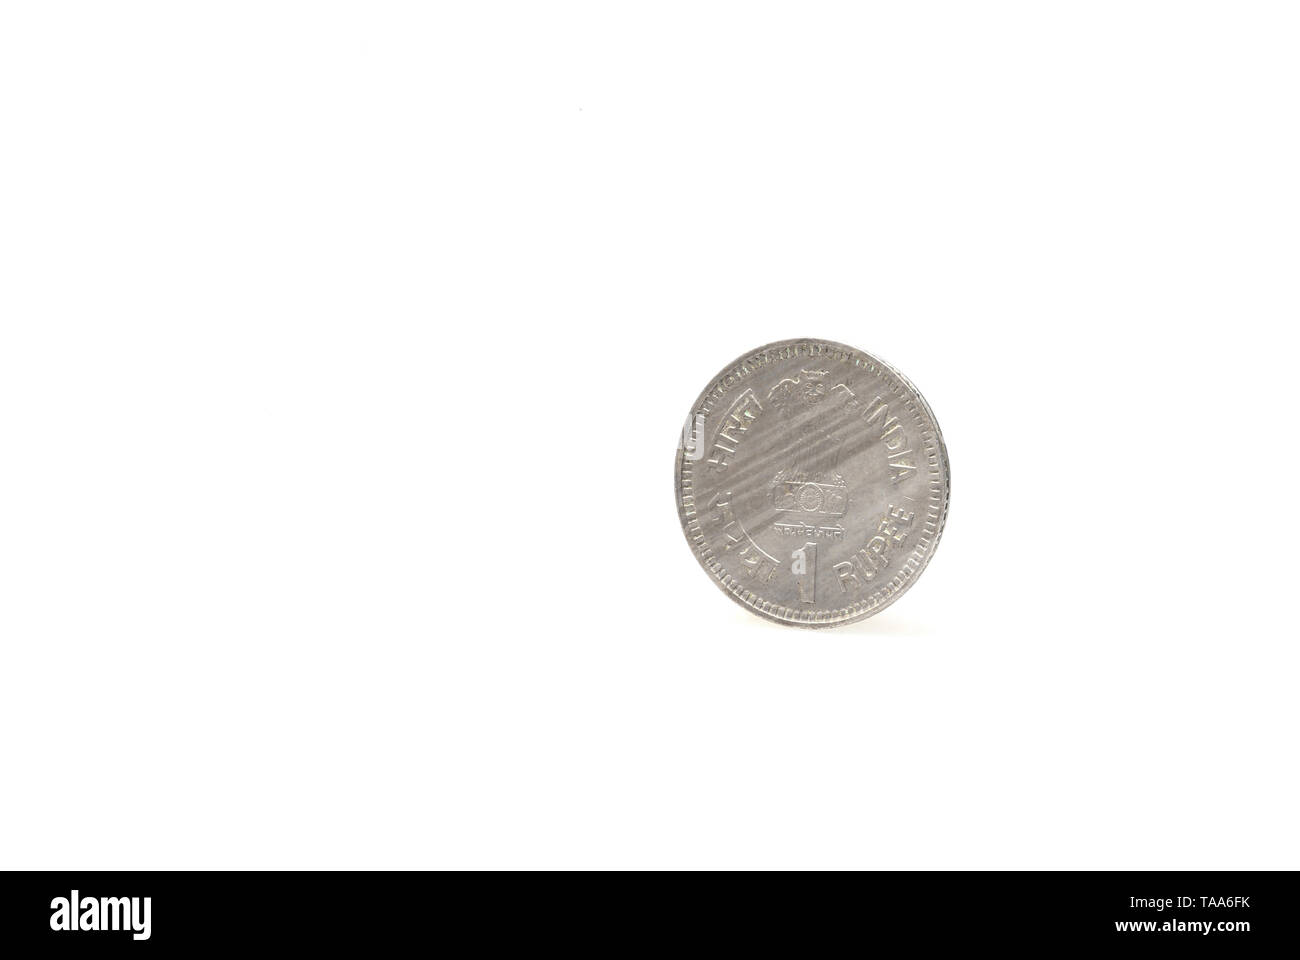 one rupee coin on white background, India, Asia, 1989 - Stock Image